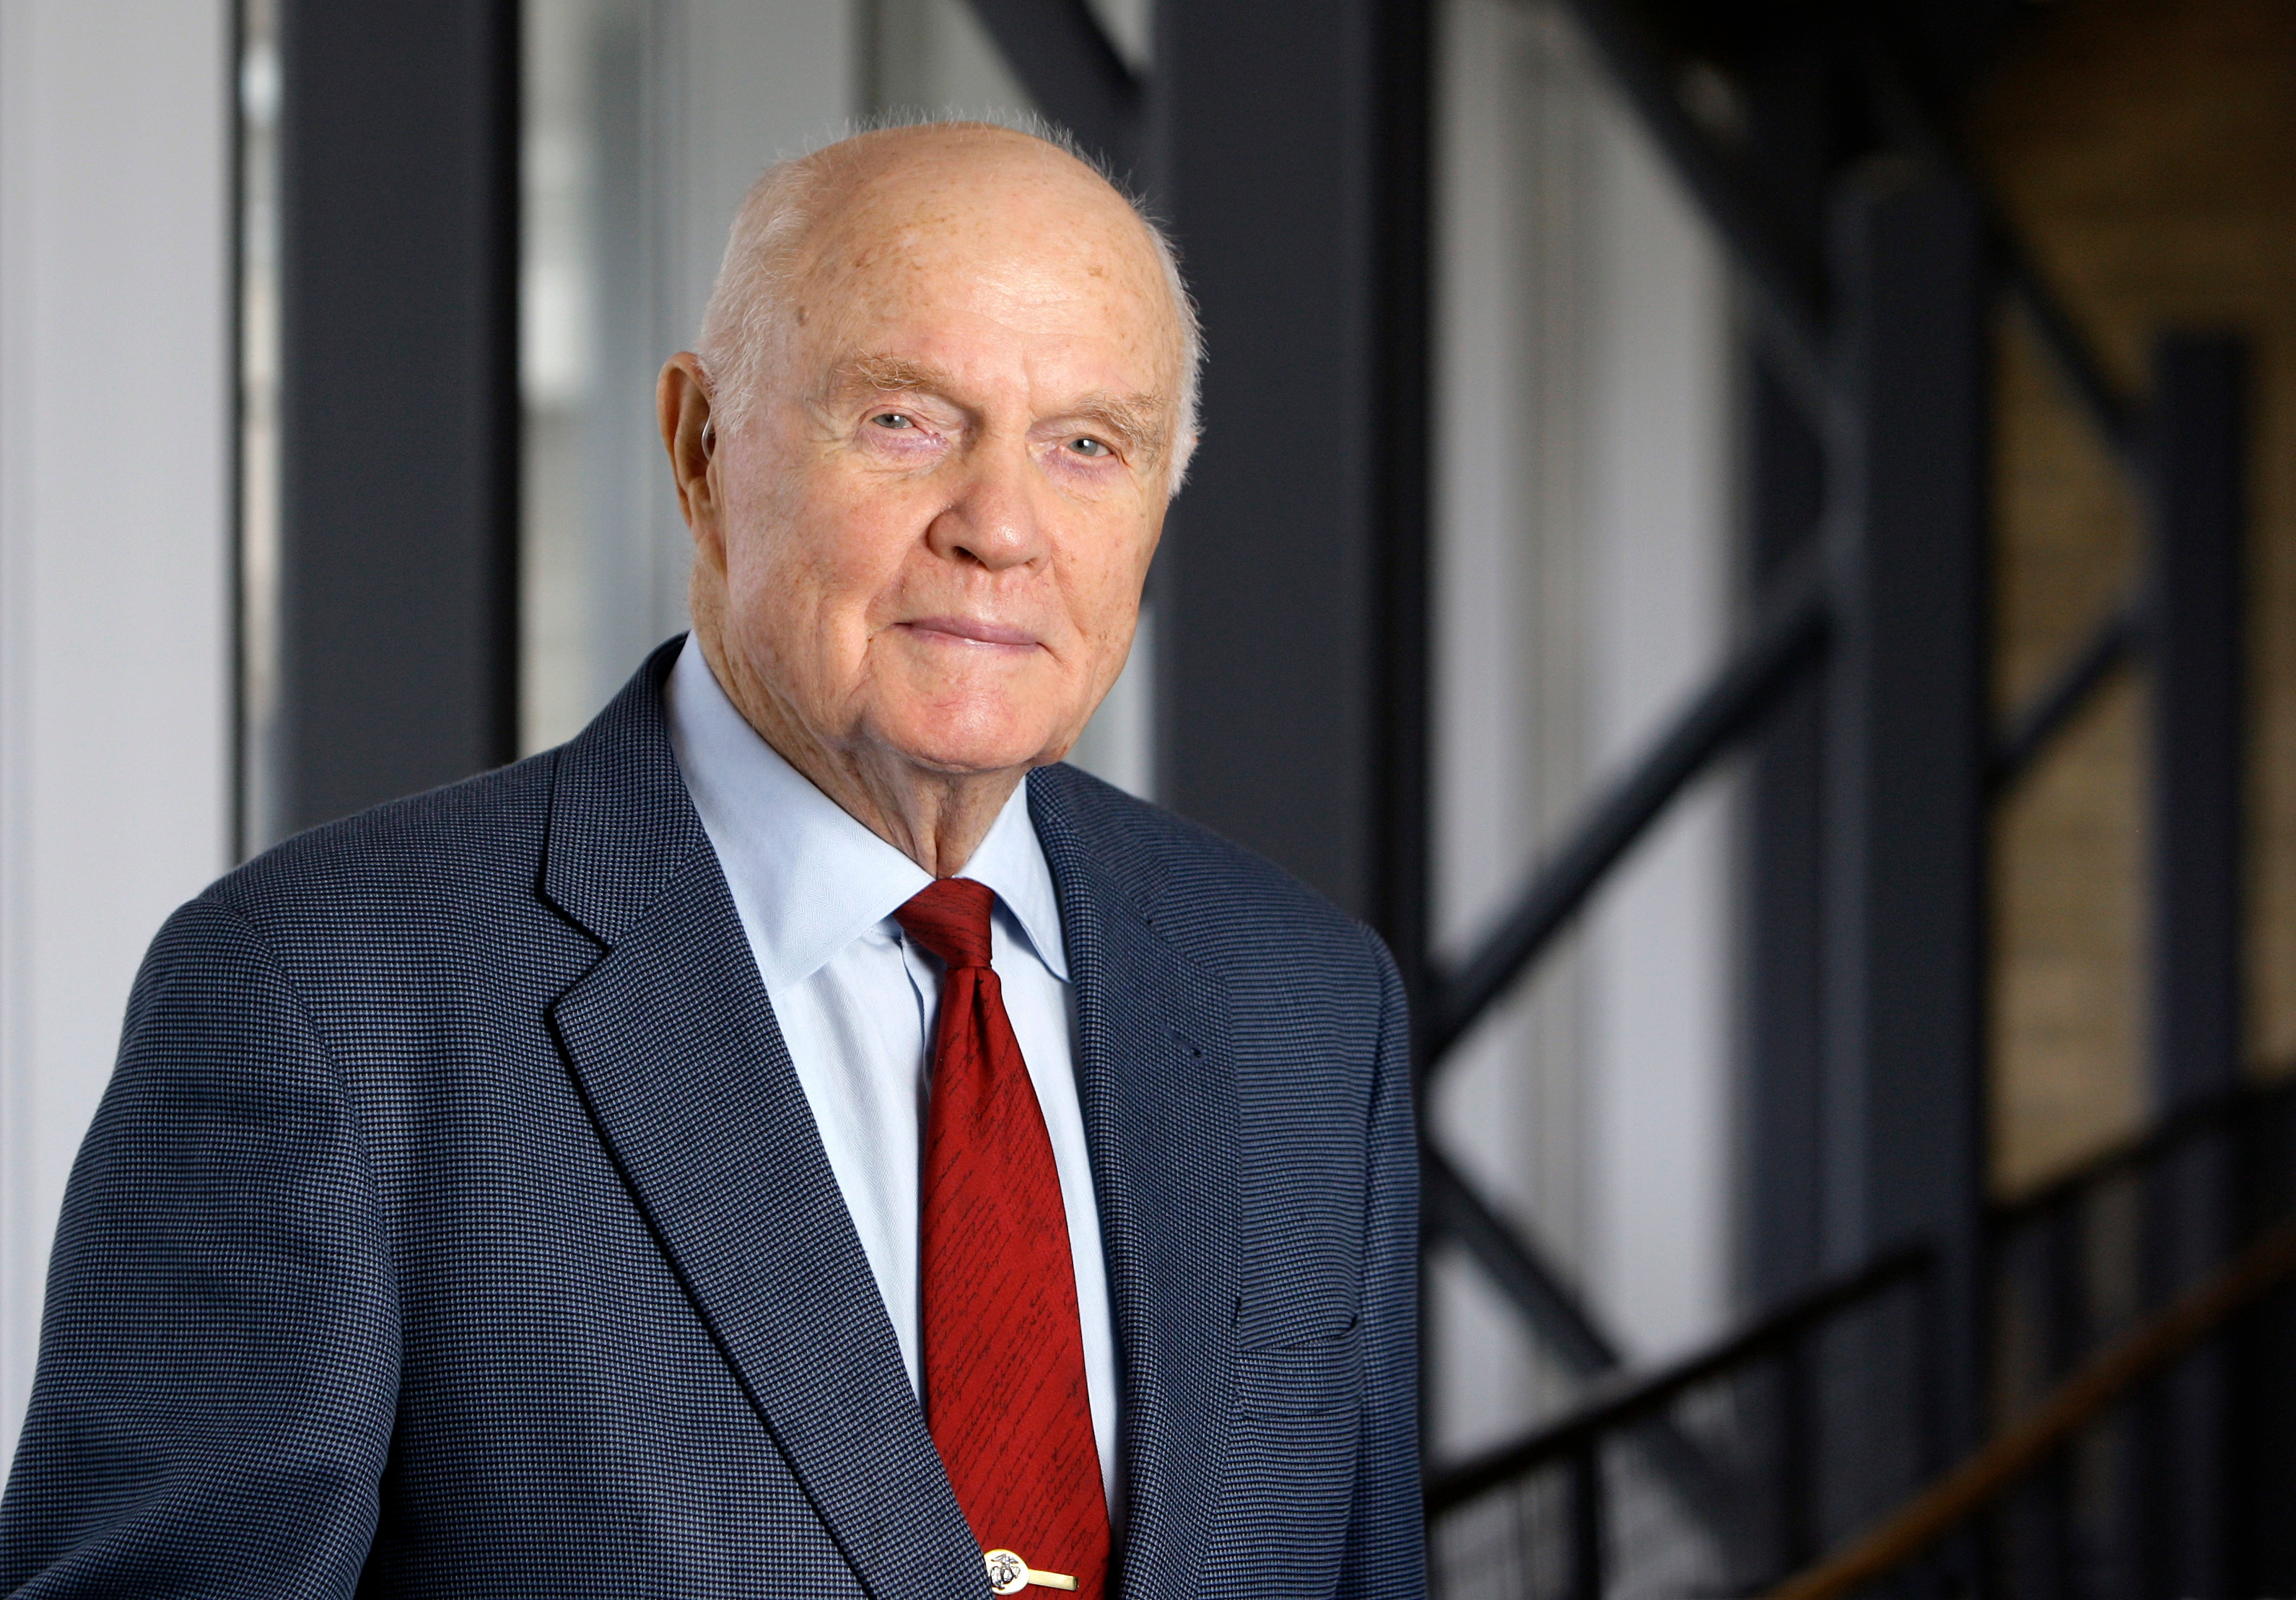 Military Mortuary Employee Allegedly Offered Peek At John Glenn's Remains